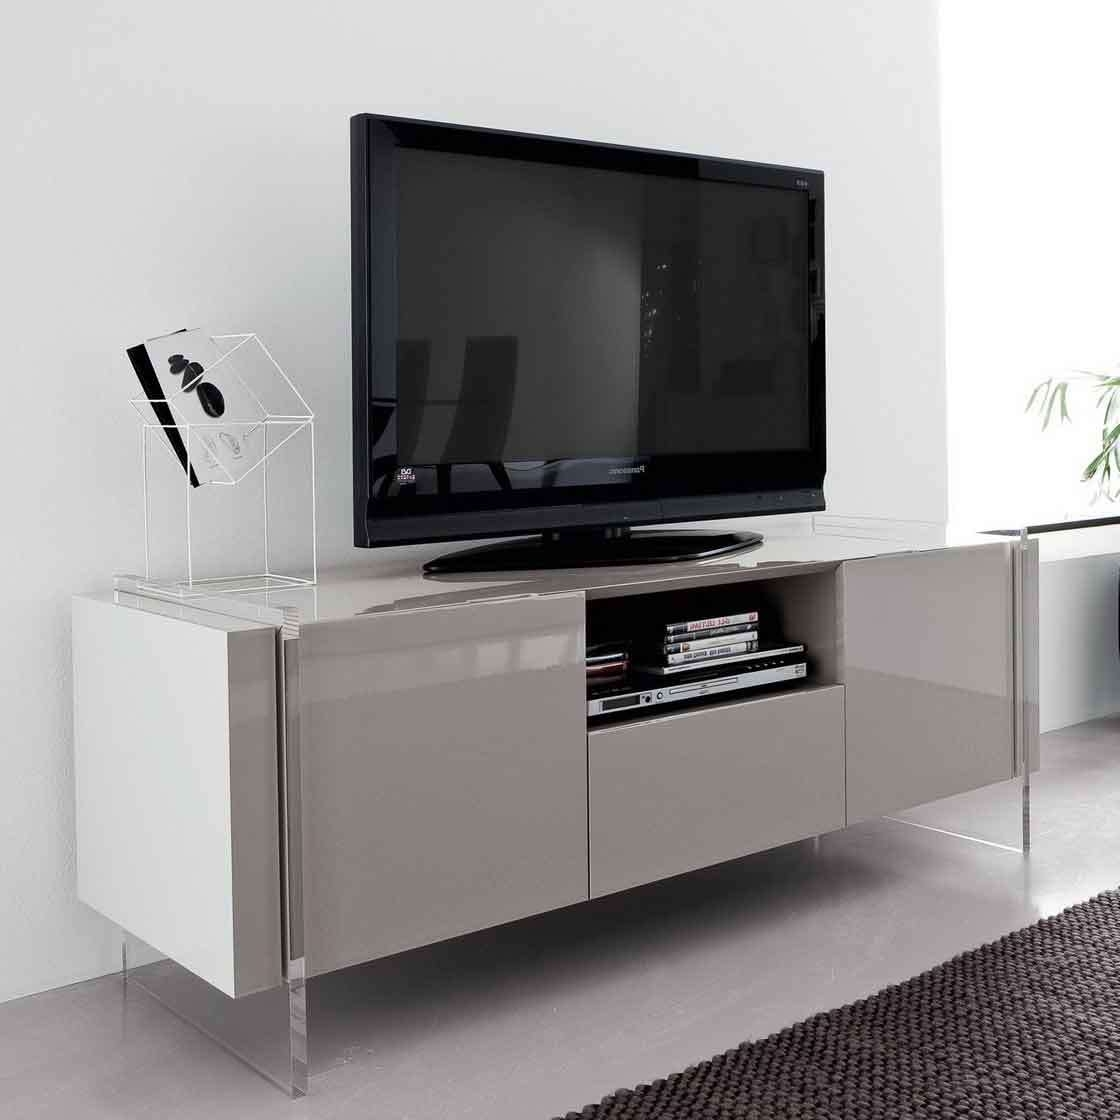 Innovative Tv Stand For Home Entertainment Room With Three Pertaining To Acrylic Tv Stands (View 6 of 15)